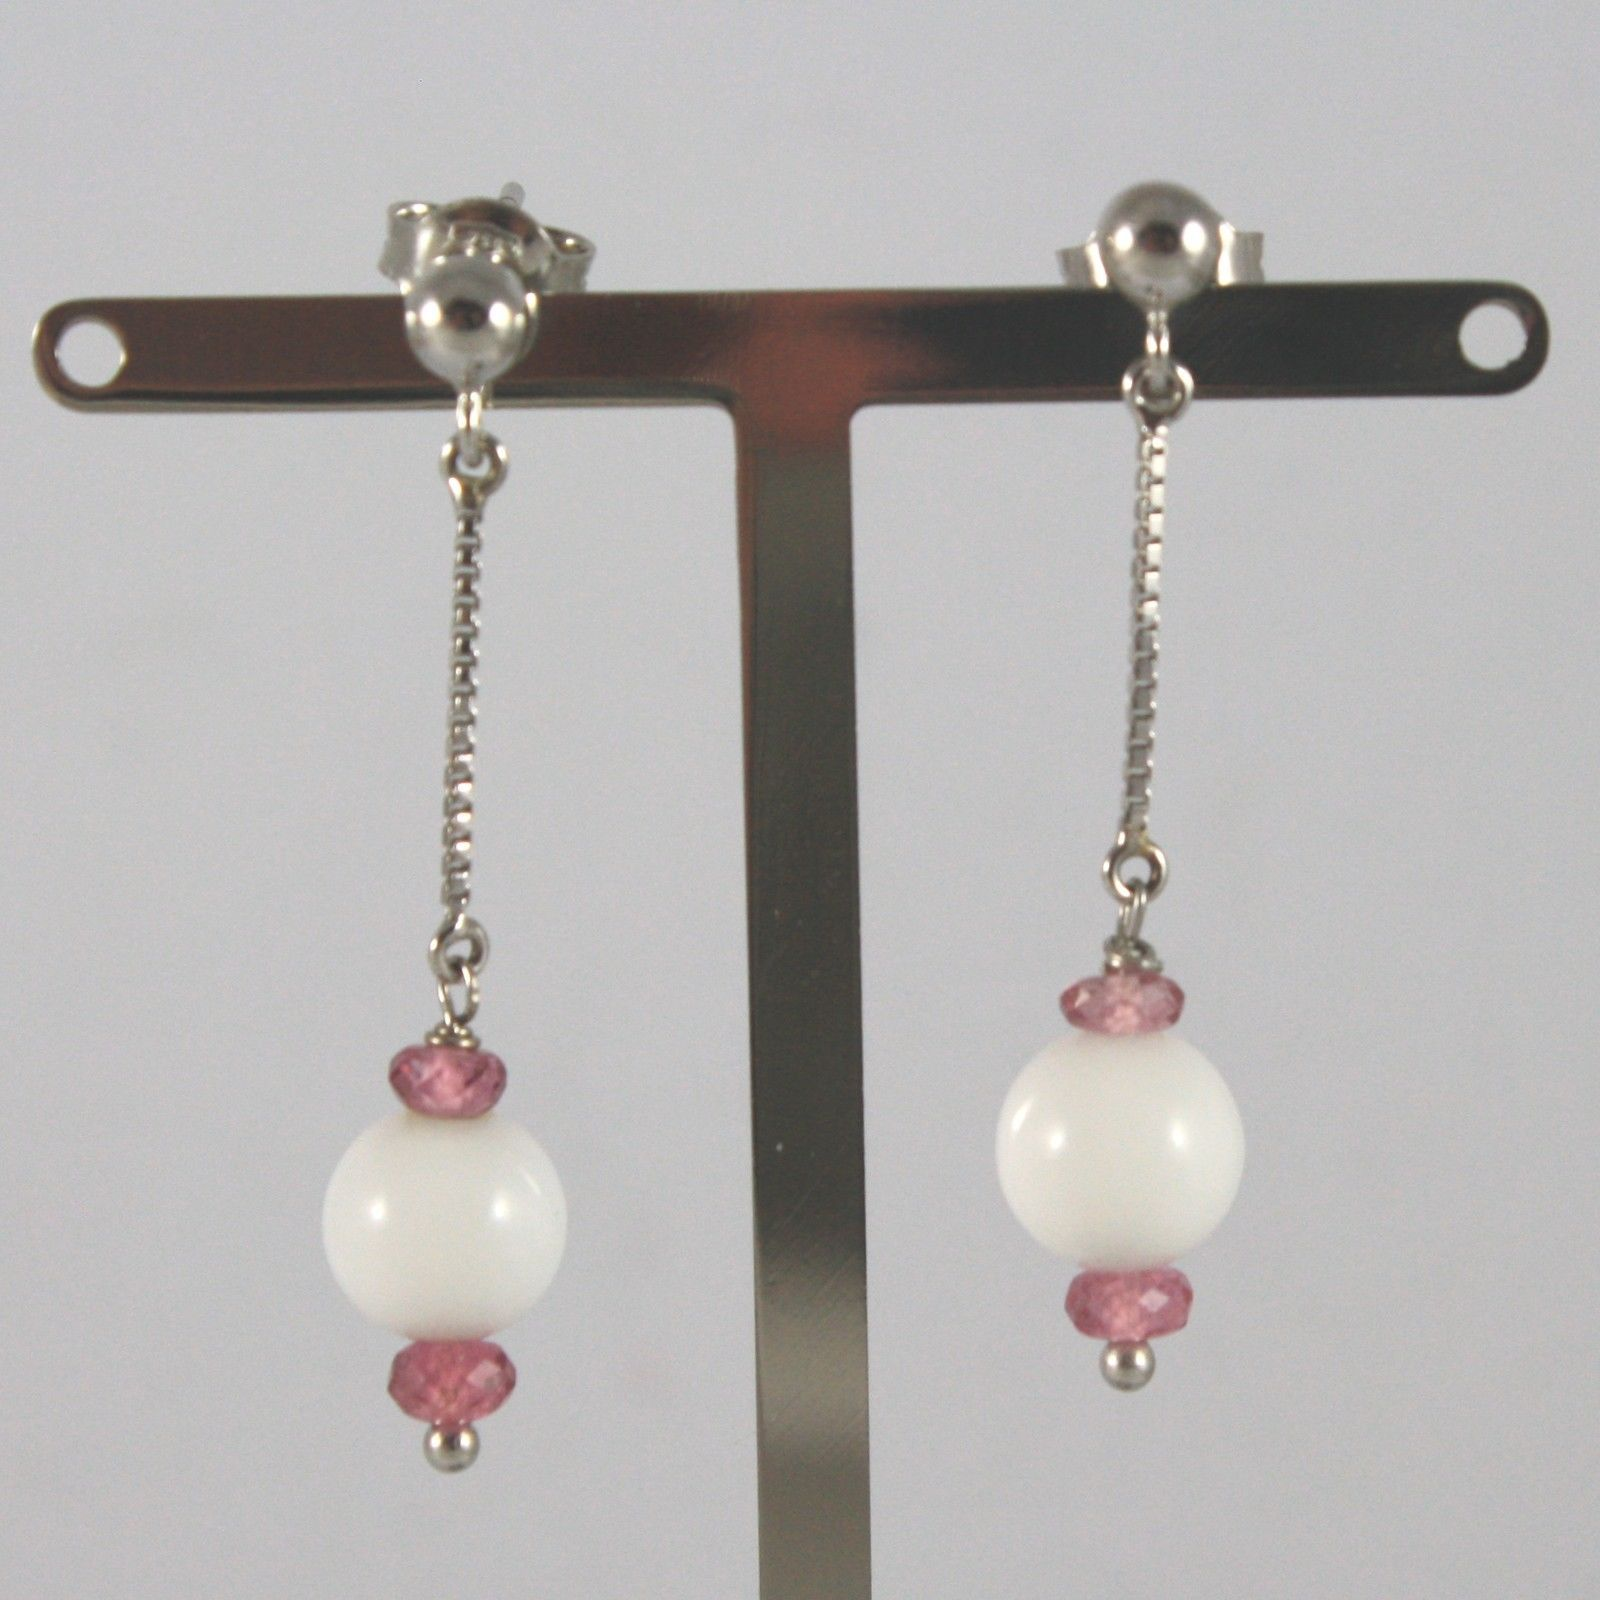 White Gold Earrings 750 18k charms, with White Agate and Amethyst